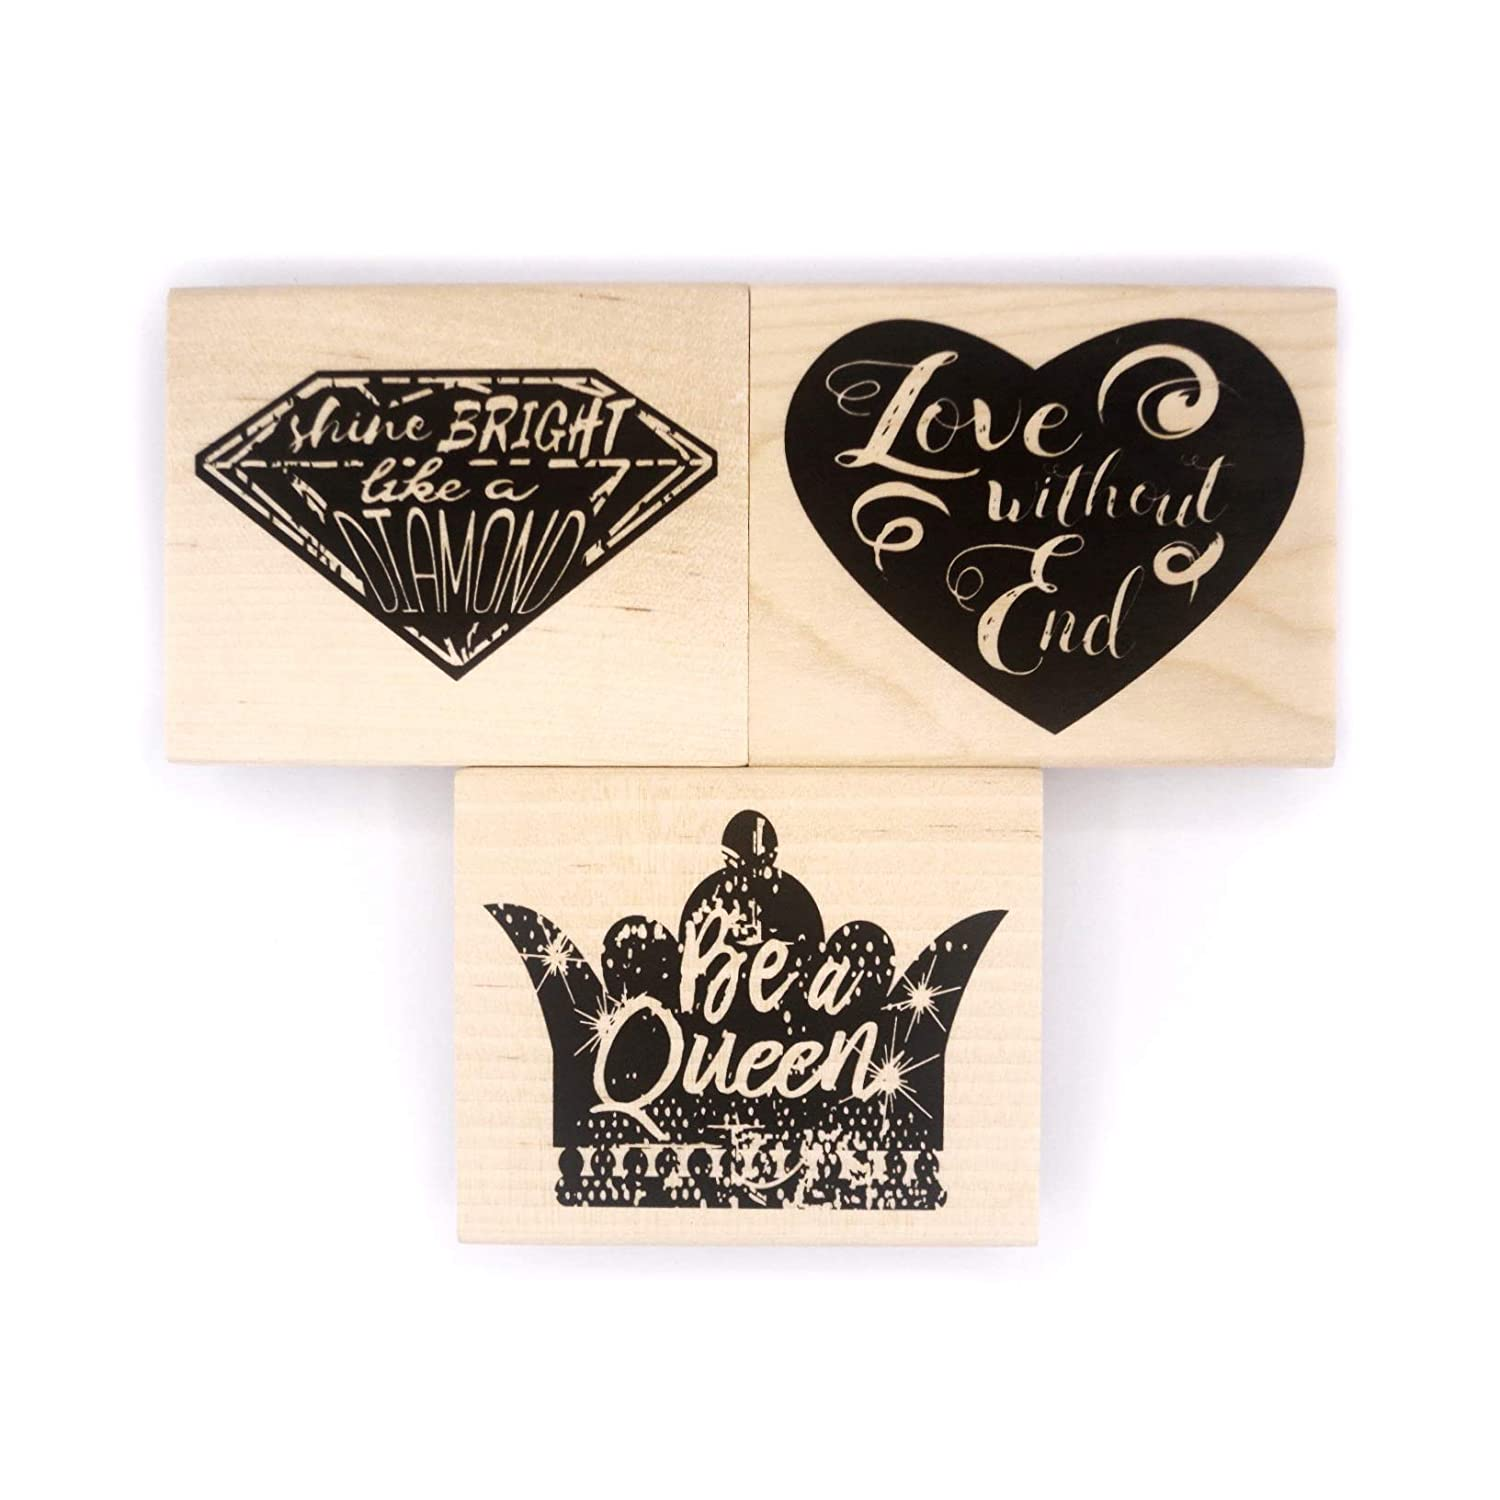 Heart 3 Pieces Crown for Card Making Opia CRAFTS Inspirational Quote Wood Mounted Rubber Stamp Set Diamond Scrapbooking and DIY Crafts